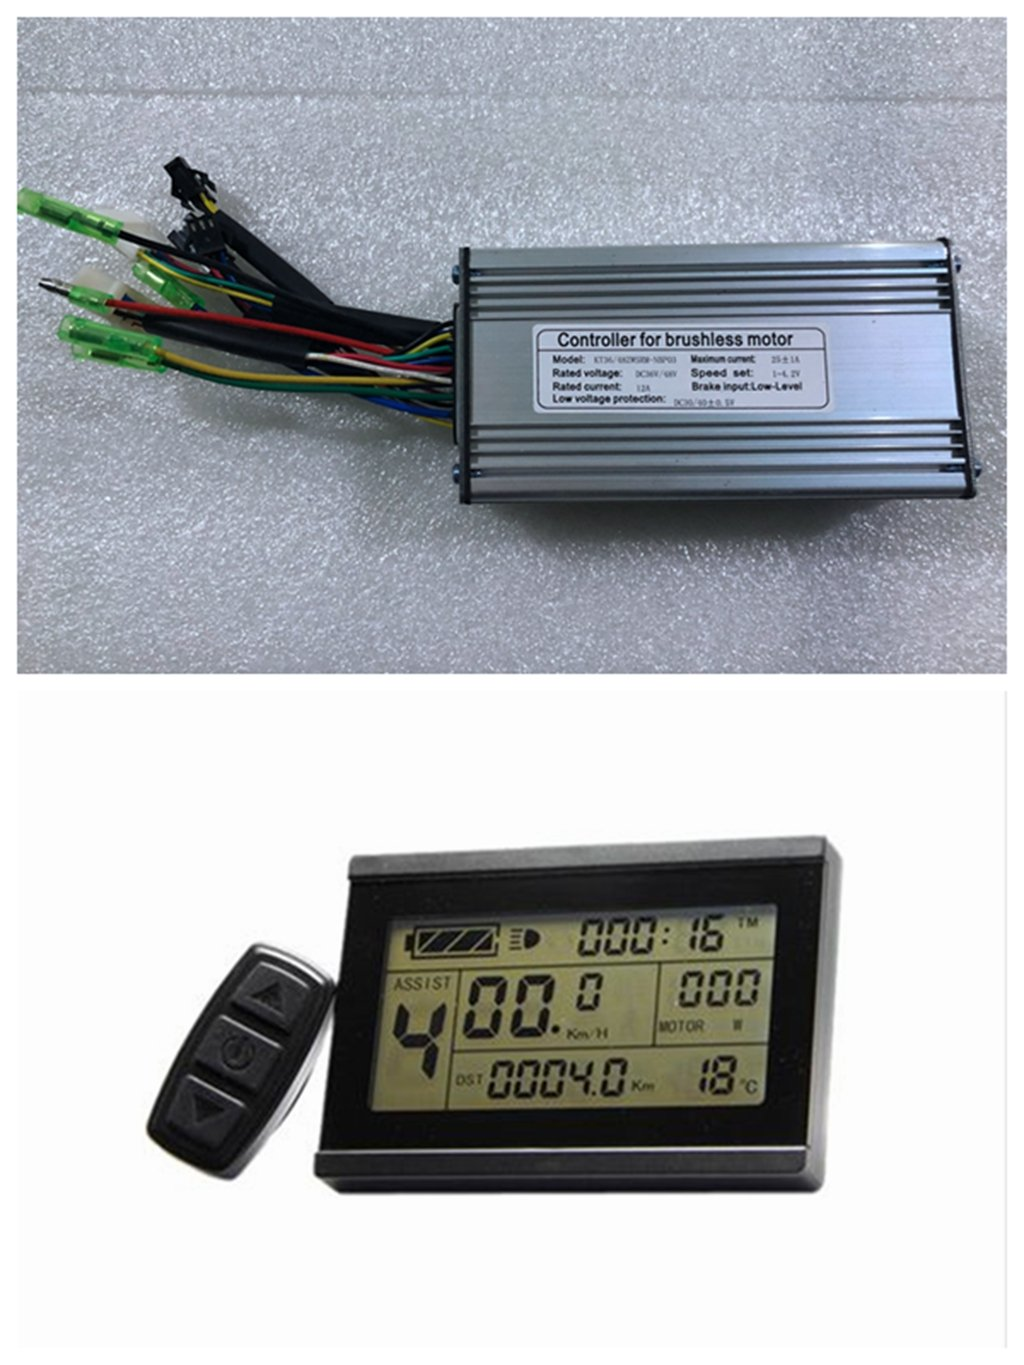 71A0MZaClwL - NBPOWER 36V/48V 750W 25A Brushless DC Motor Controller Ebike Controller +KT-LCD3 Display One Set,used for 750W-1000W…